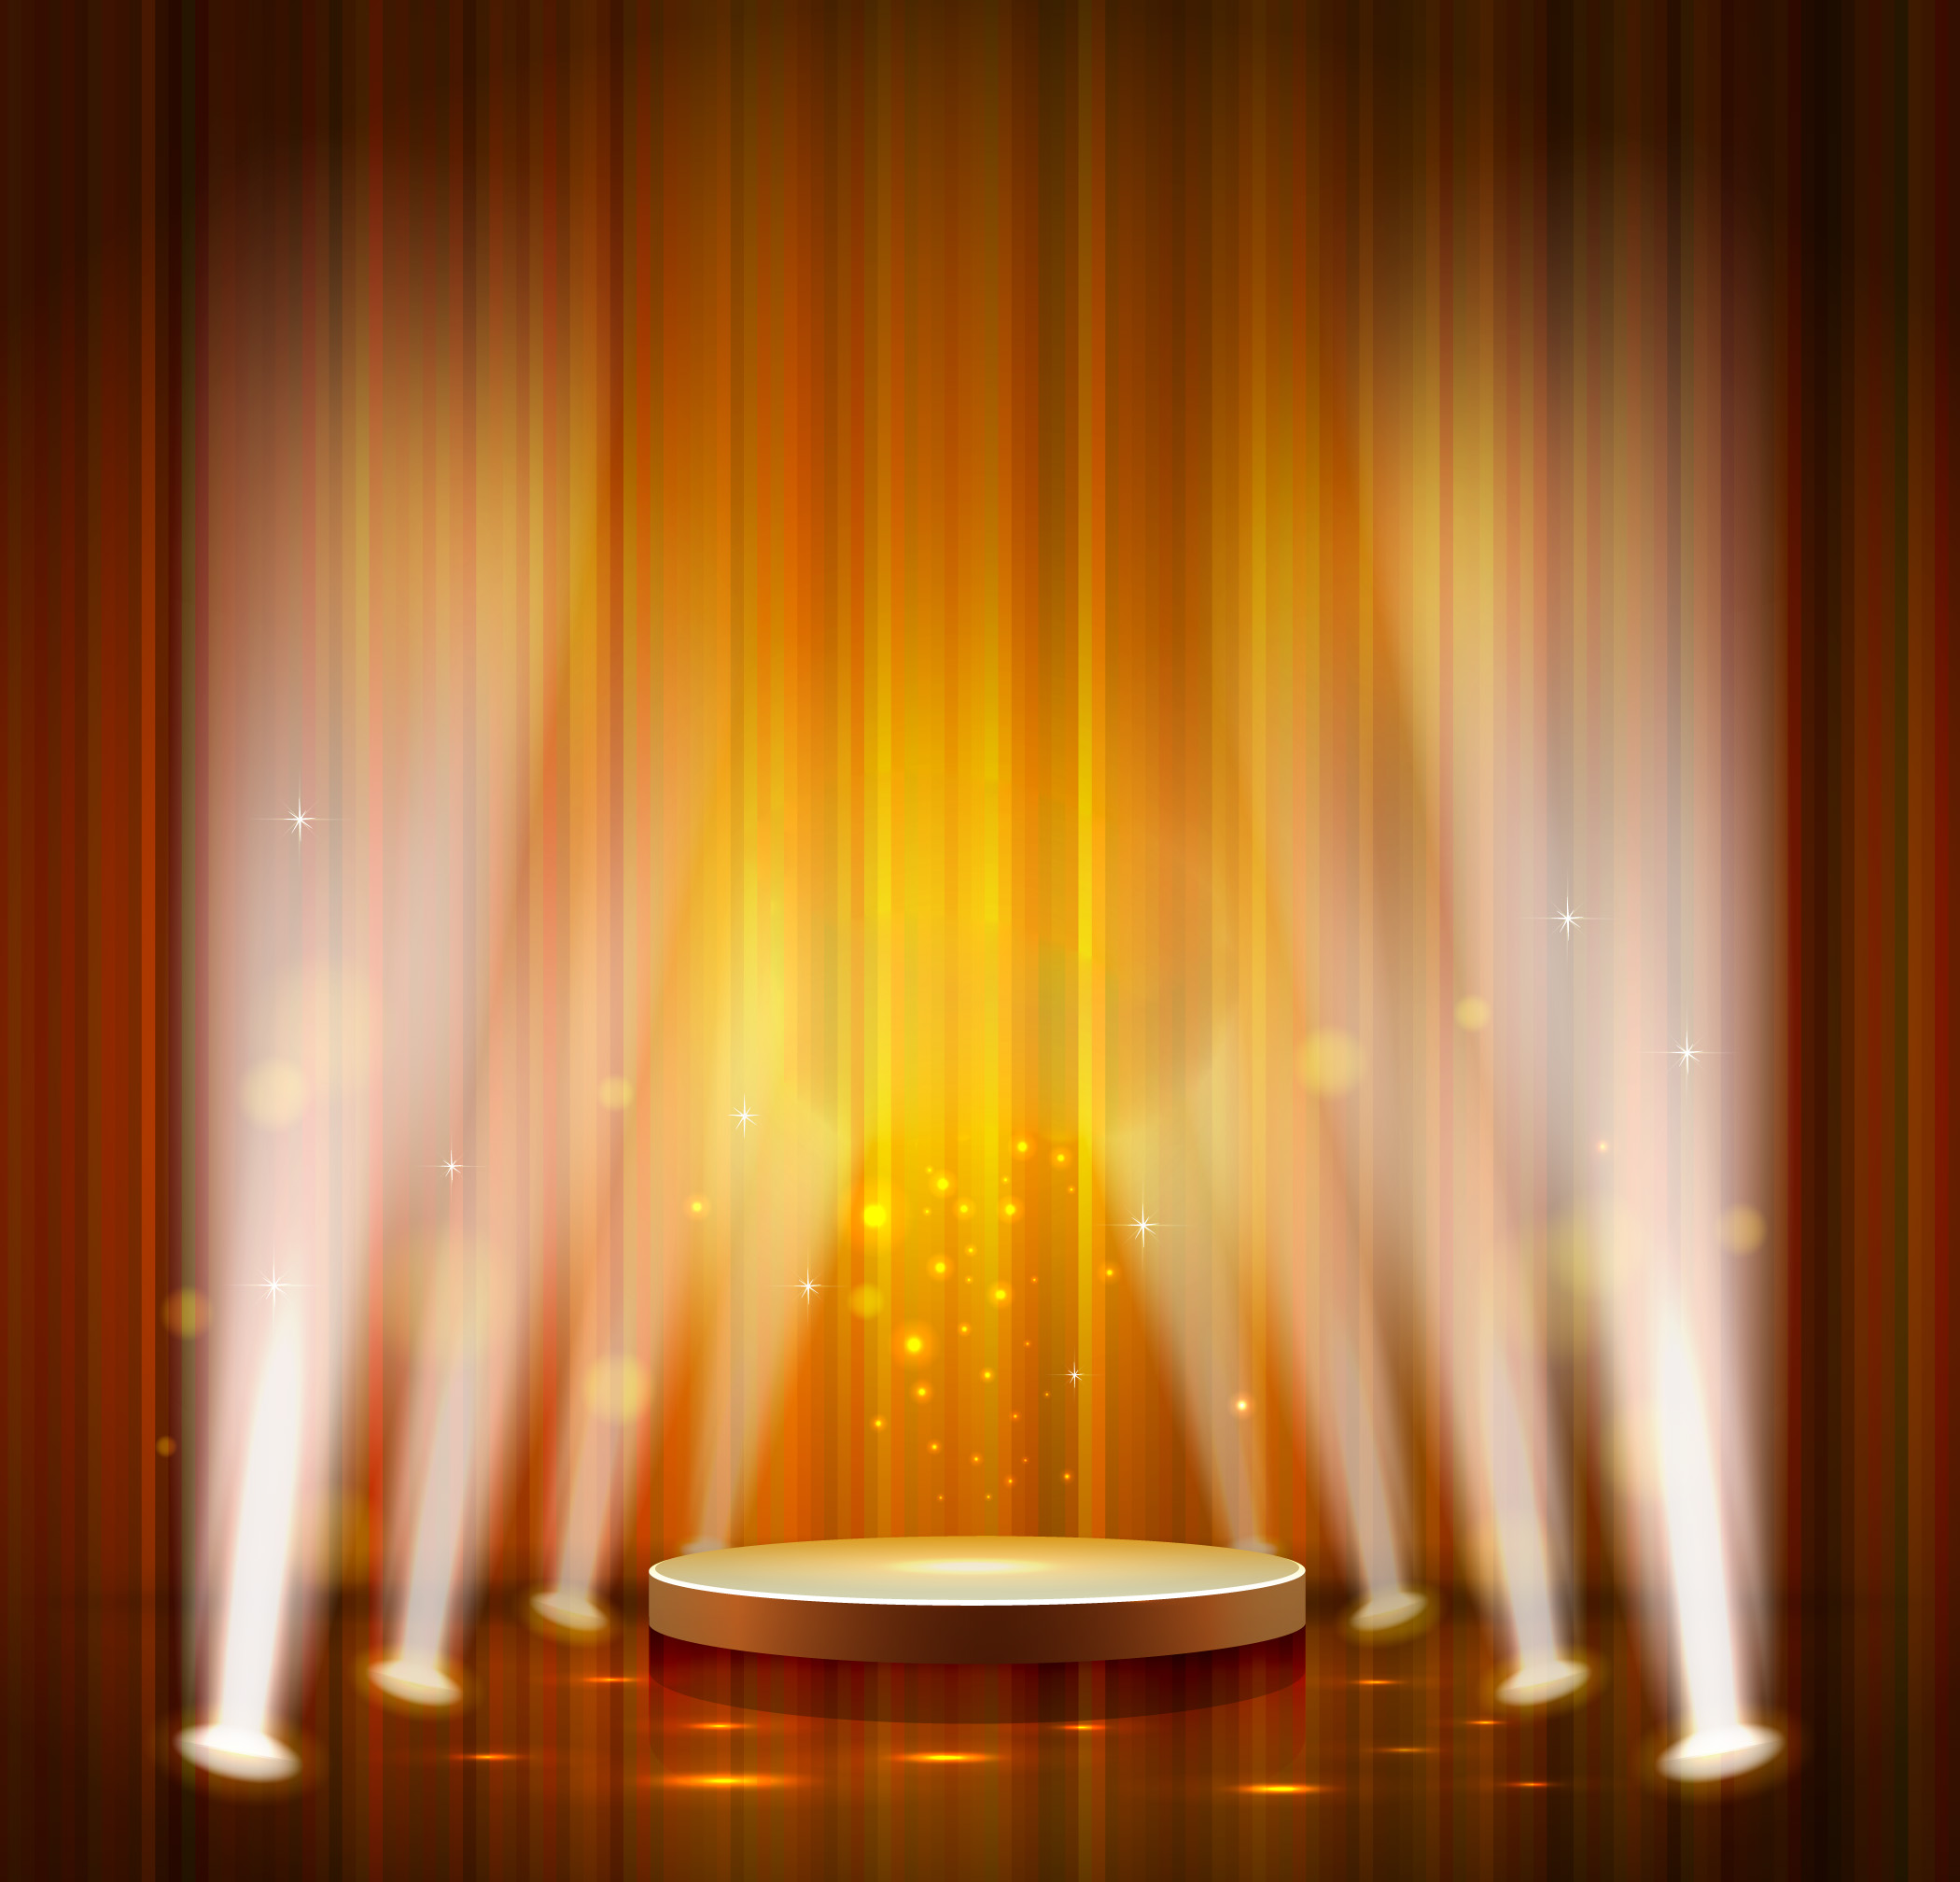 orange stage lights background  orange  light  stage background image for free download